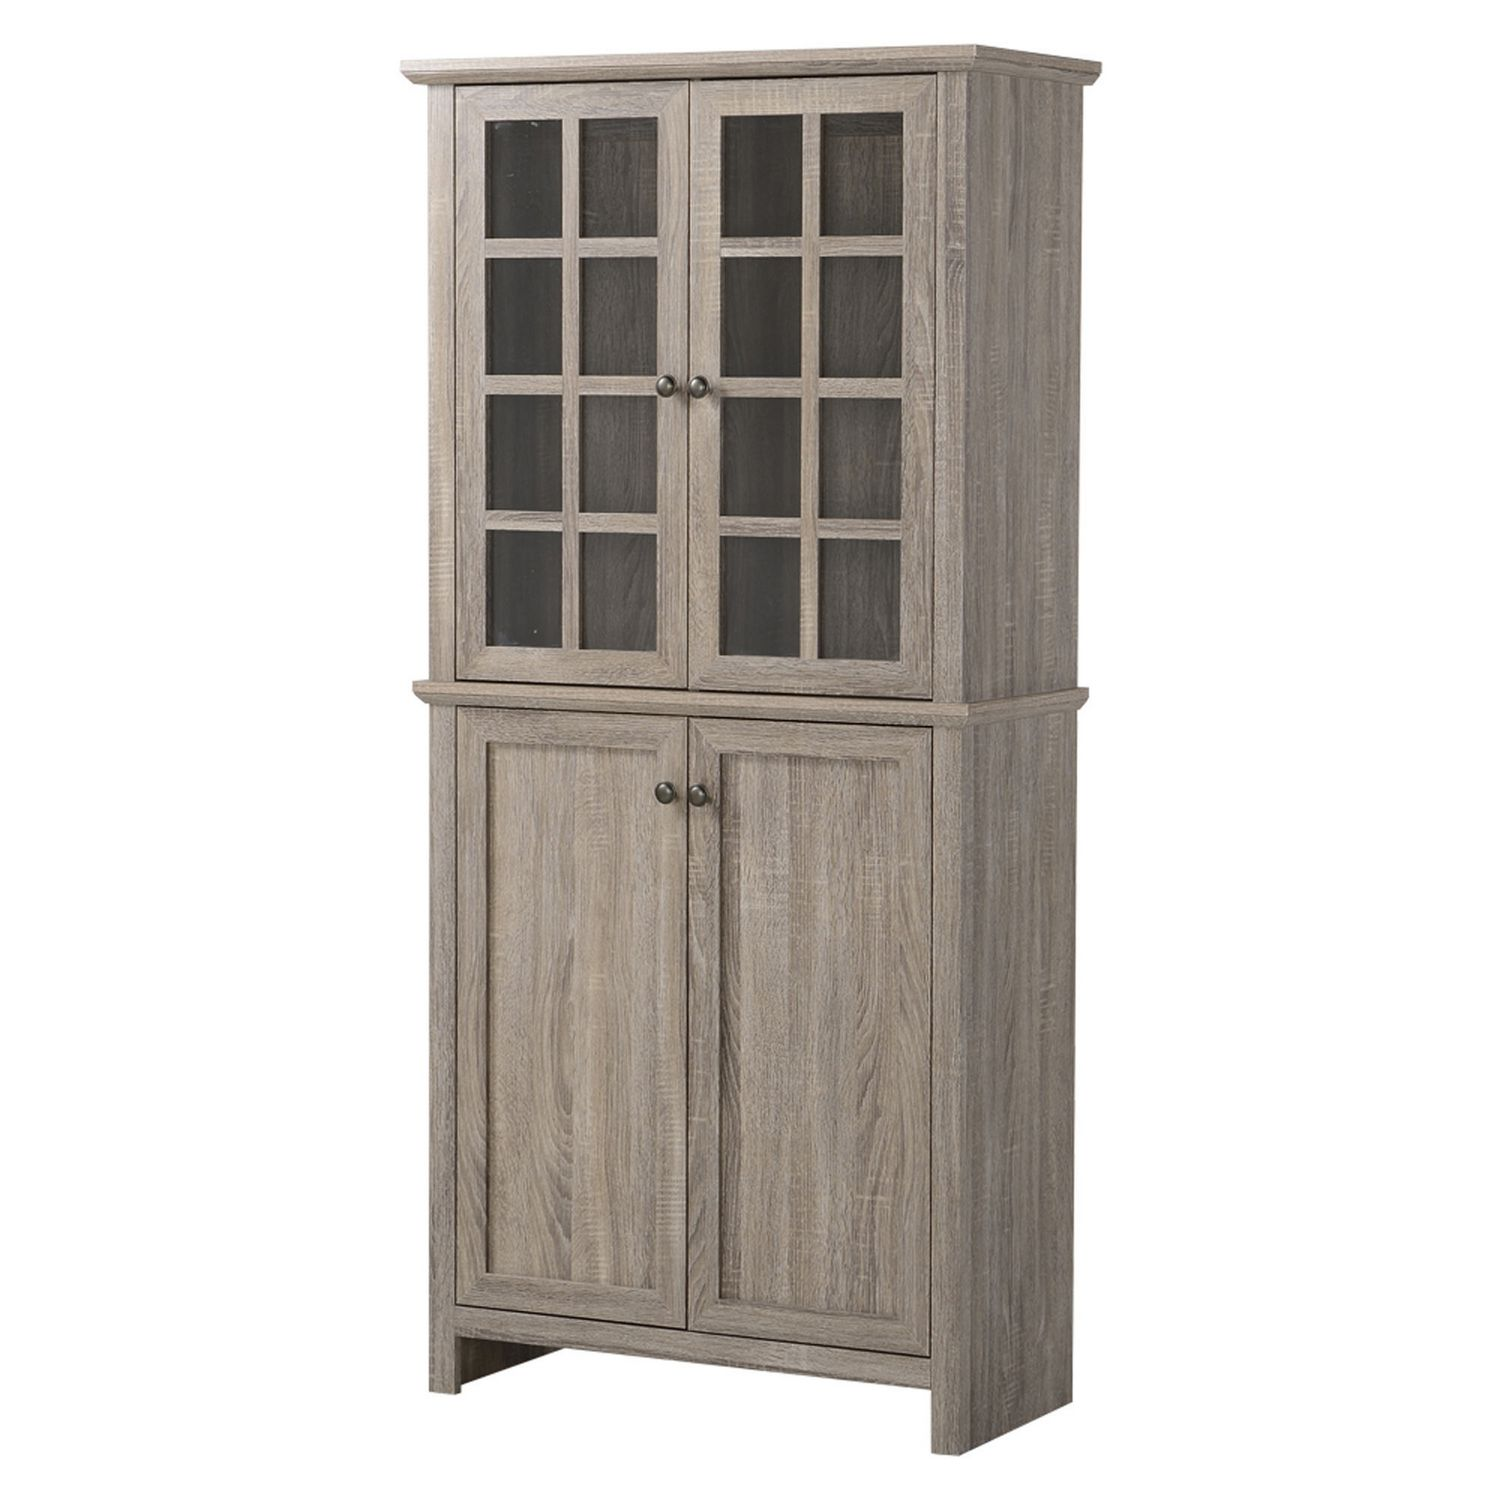 Excellent Homestar 2 Door Glass Storage Cabinet In Reclaimed Wood Download Free Architecture Designs Crovemadebymaigaardcom